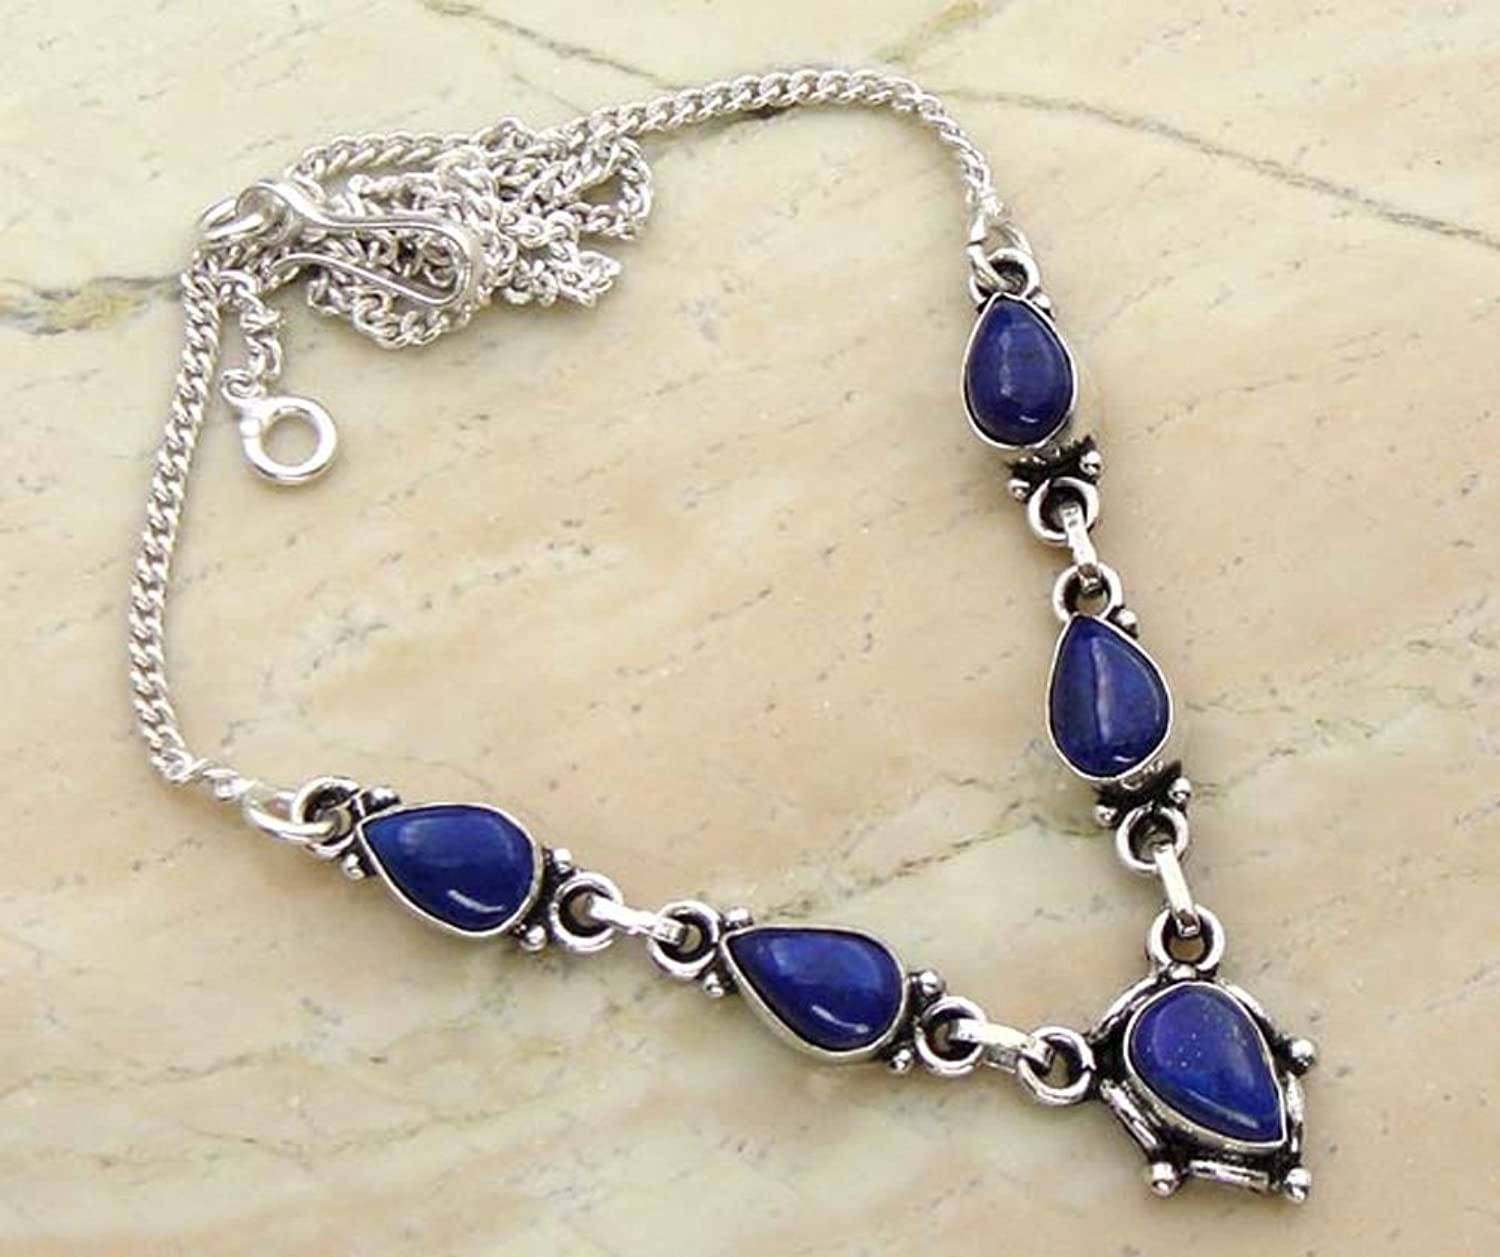 Genuine Lapis Lazuli 925 Silver Overlay Handmade Fashion Necklace Jewelry